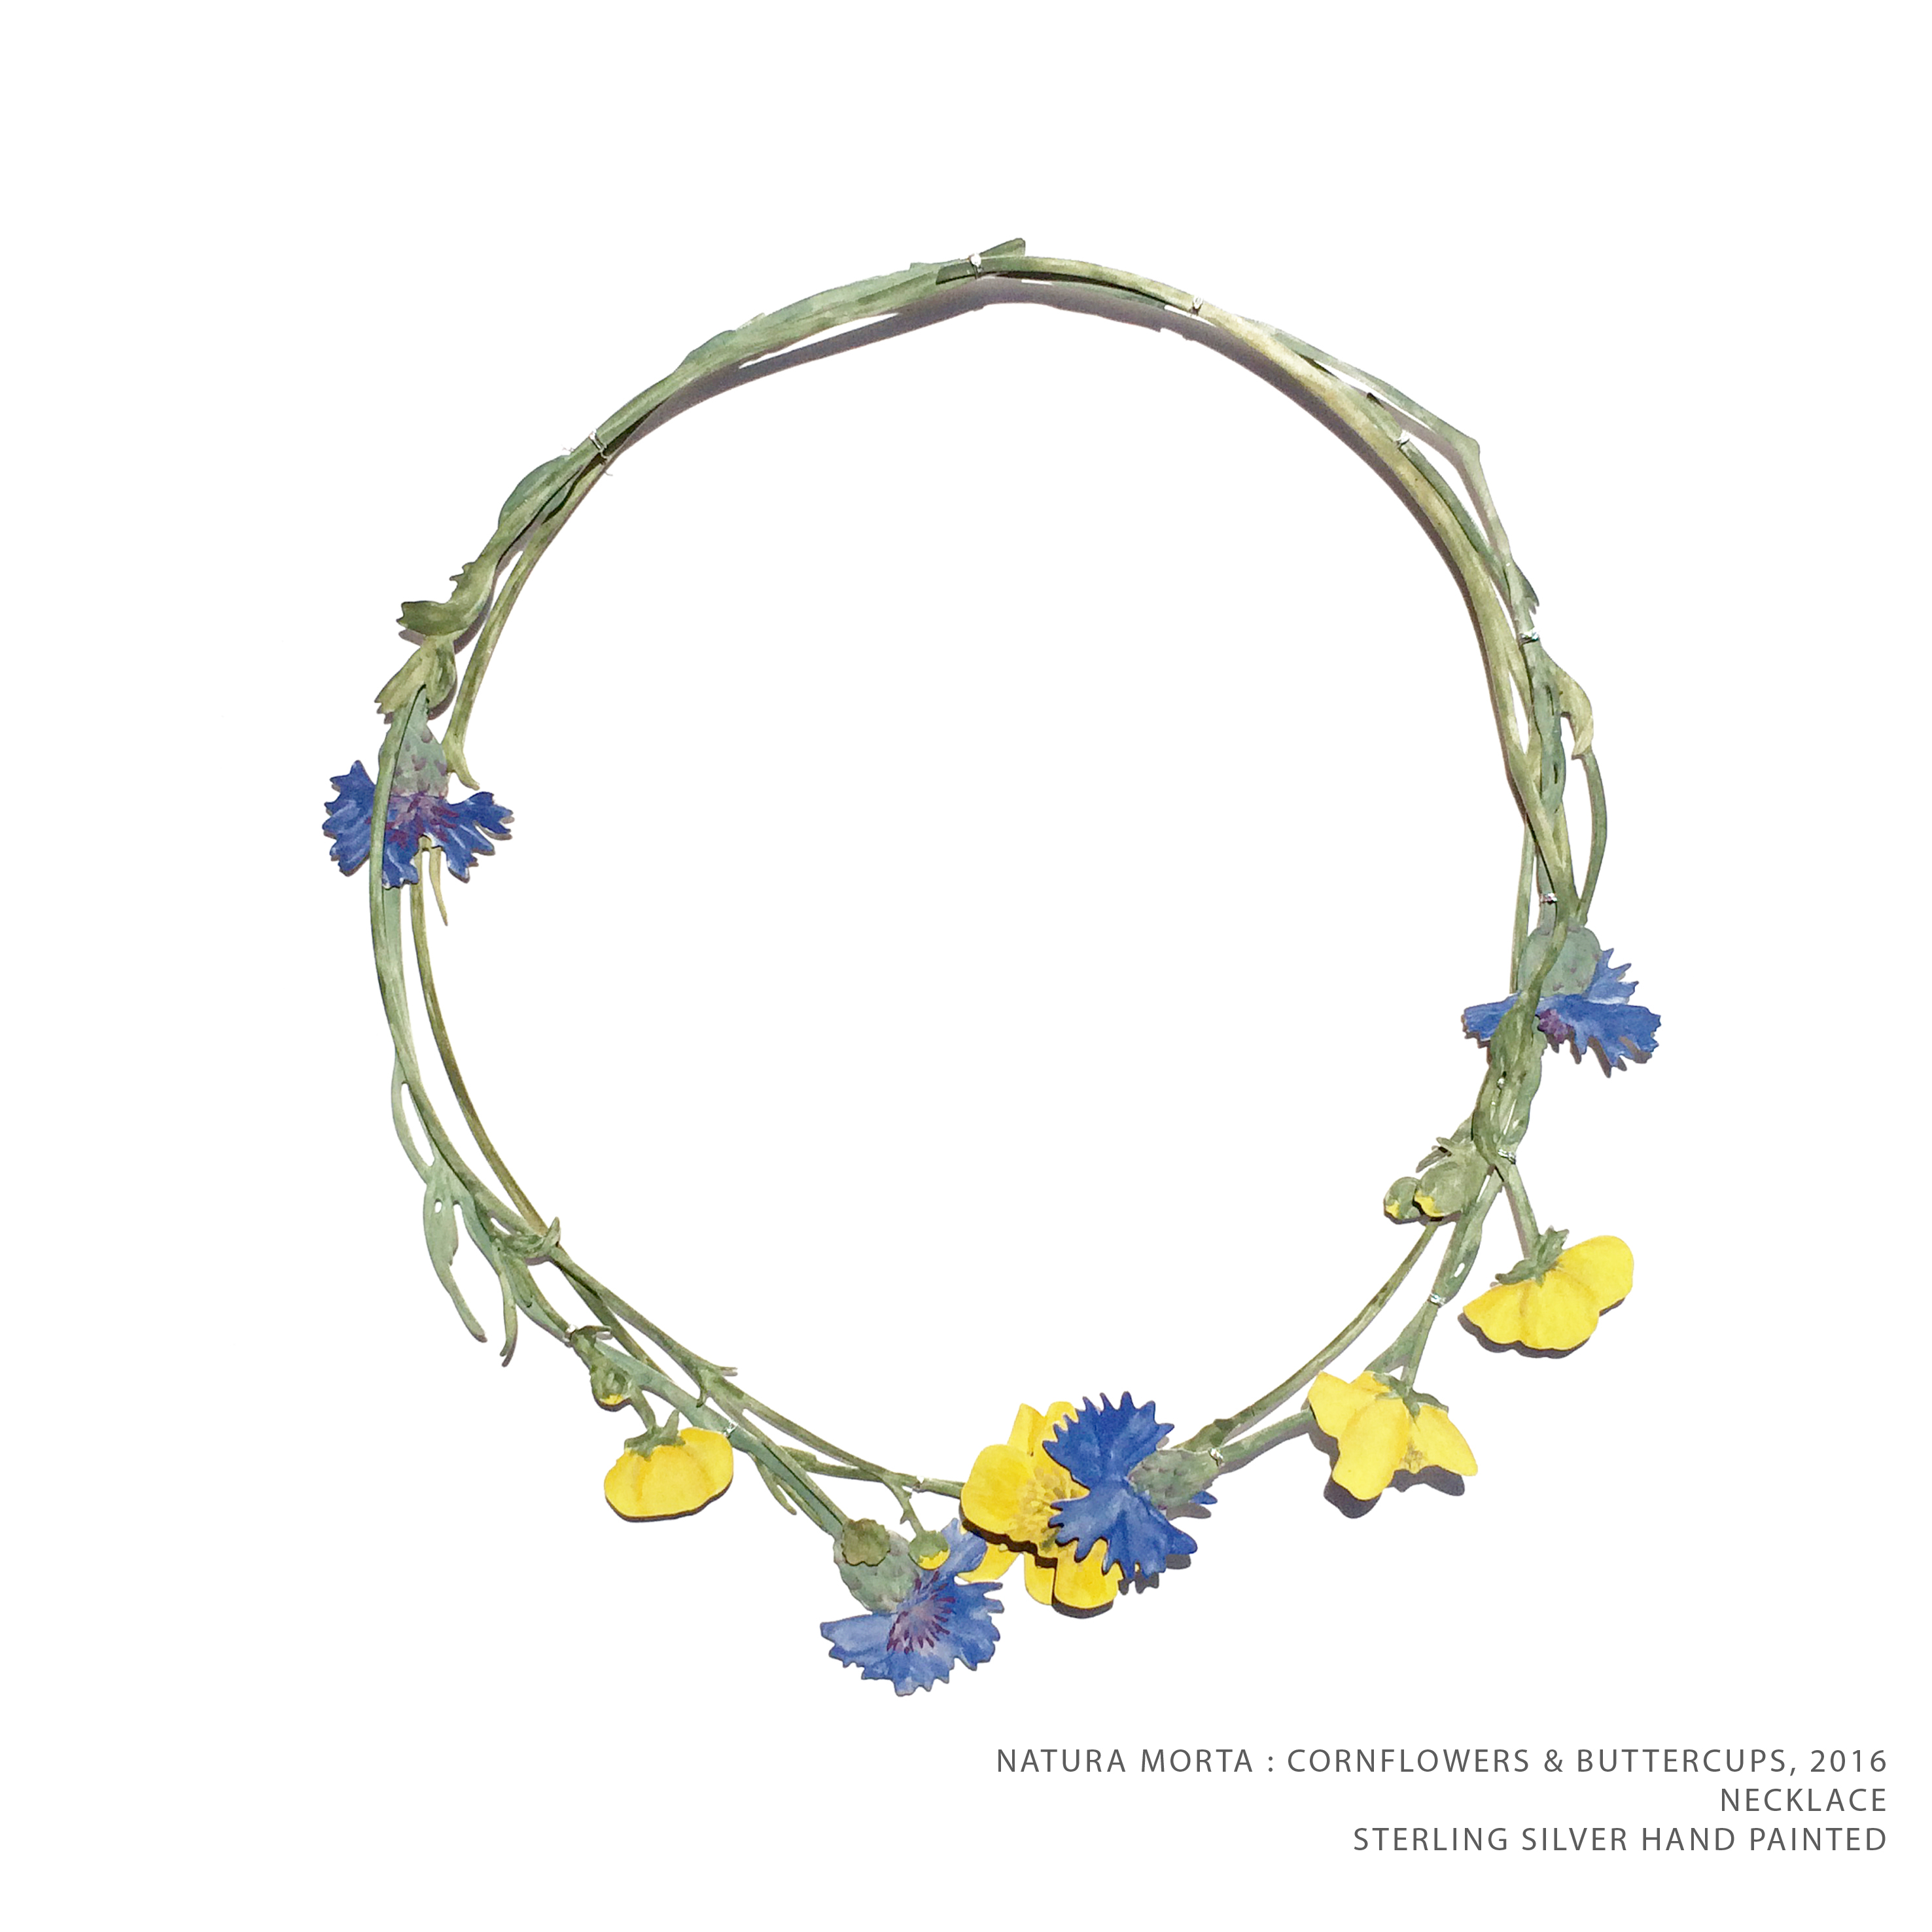 Natura Morta Buttercup & Cornflowers 2016 TEXT